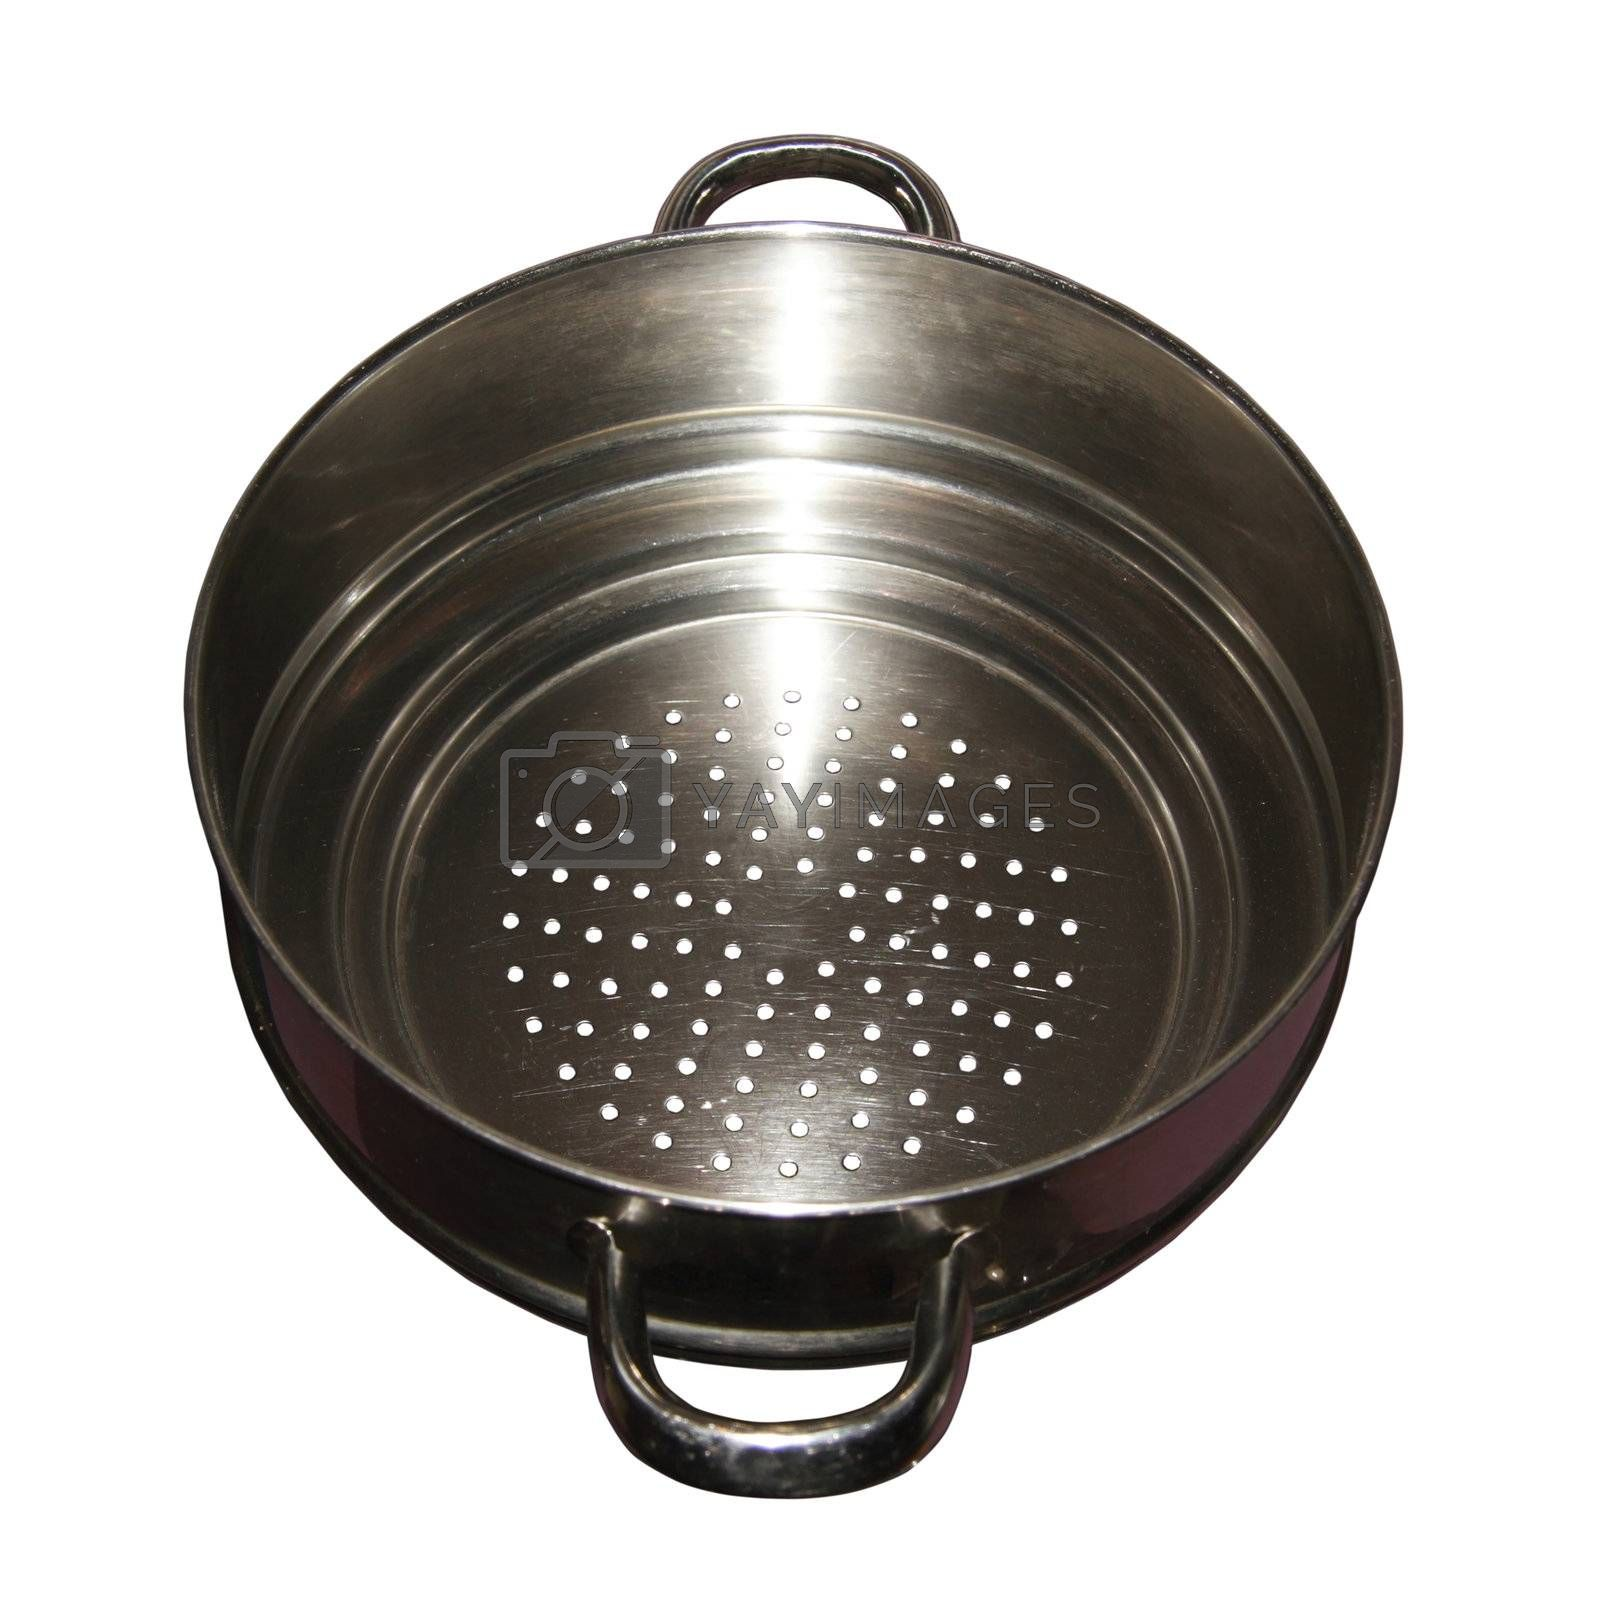 cut out of a kitchen colander